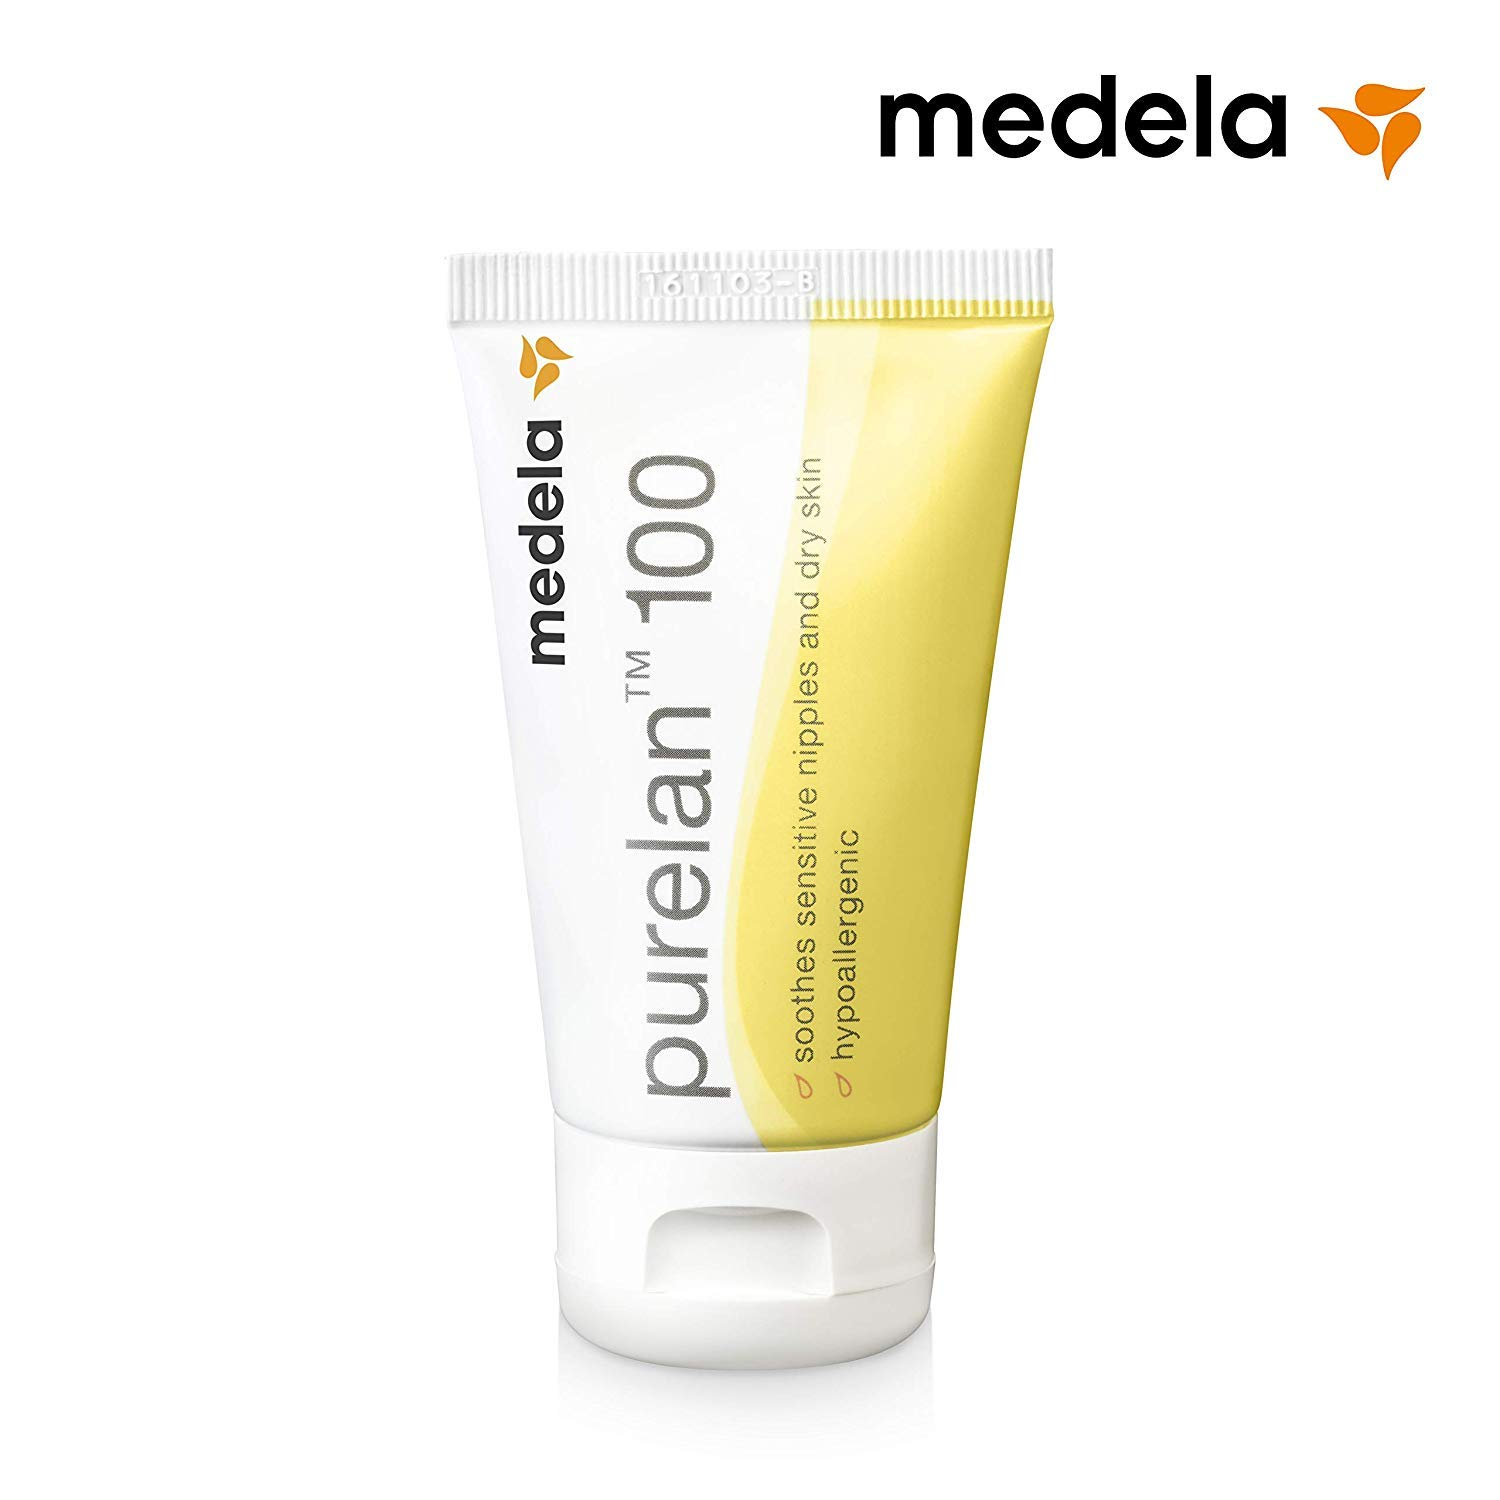 Purelan 100 Nipple Cream - 37g (100% Ultra-Pure and Natural Medical-Grade Lanolin) New Formula! by Medela